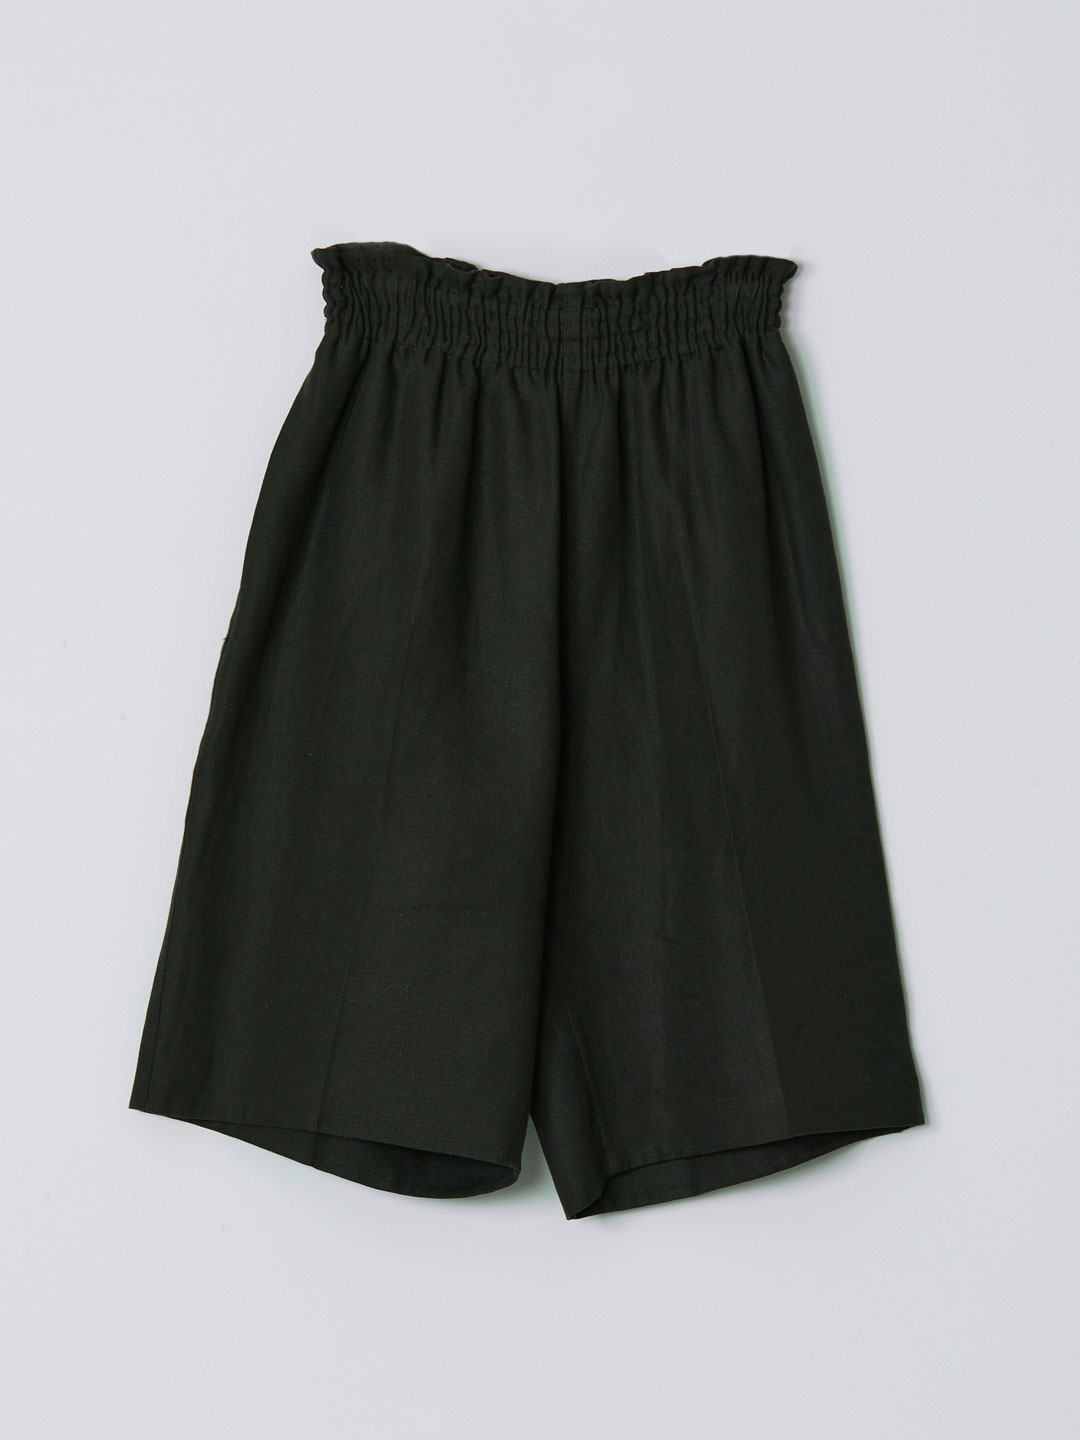 No 0206 Linen Rever Shorts - Dark Green